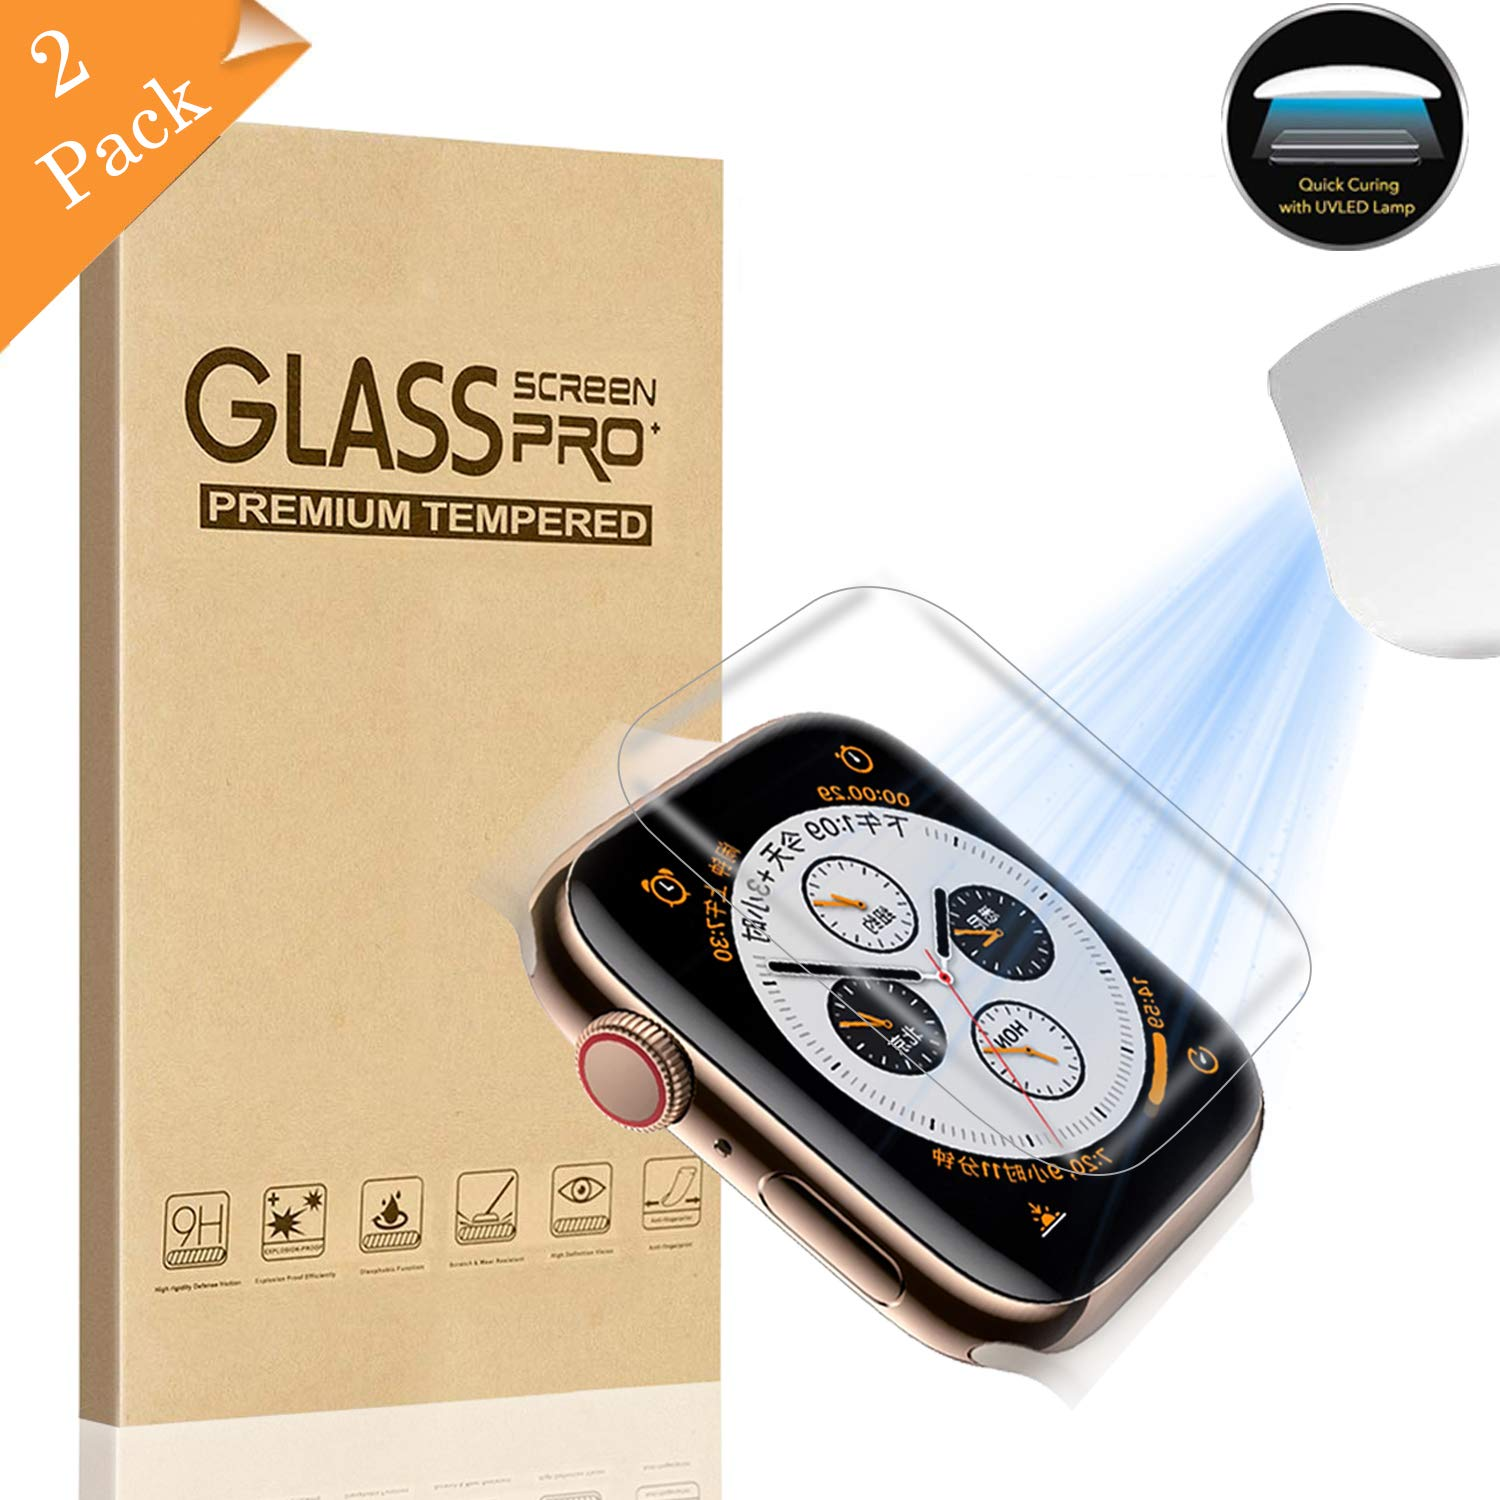 【2 Pack】 Fotbor Compatible for Apple Watch Series 4 44mm Screen Protector  Tempered Glass,[Liquid Dispersion Tech] 3D Curved Full Coverage Full